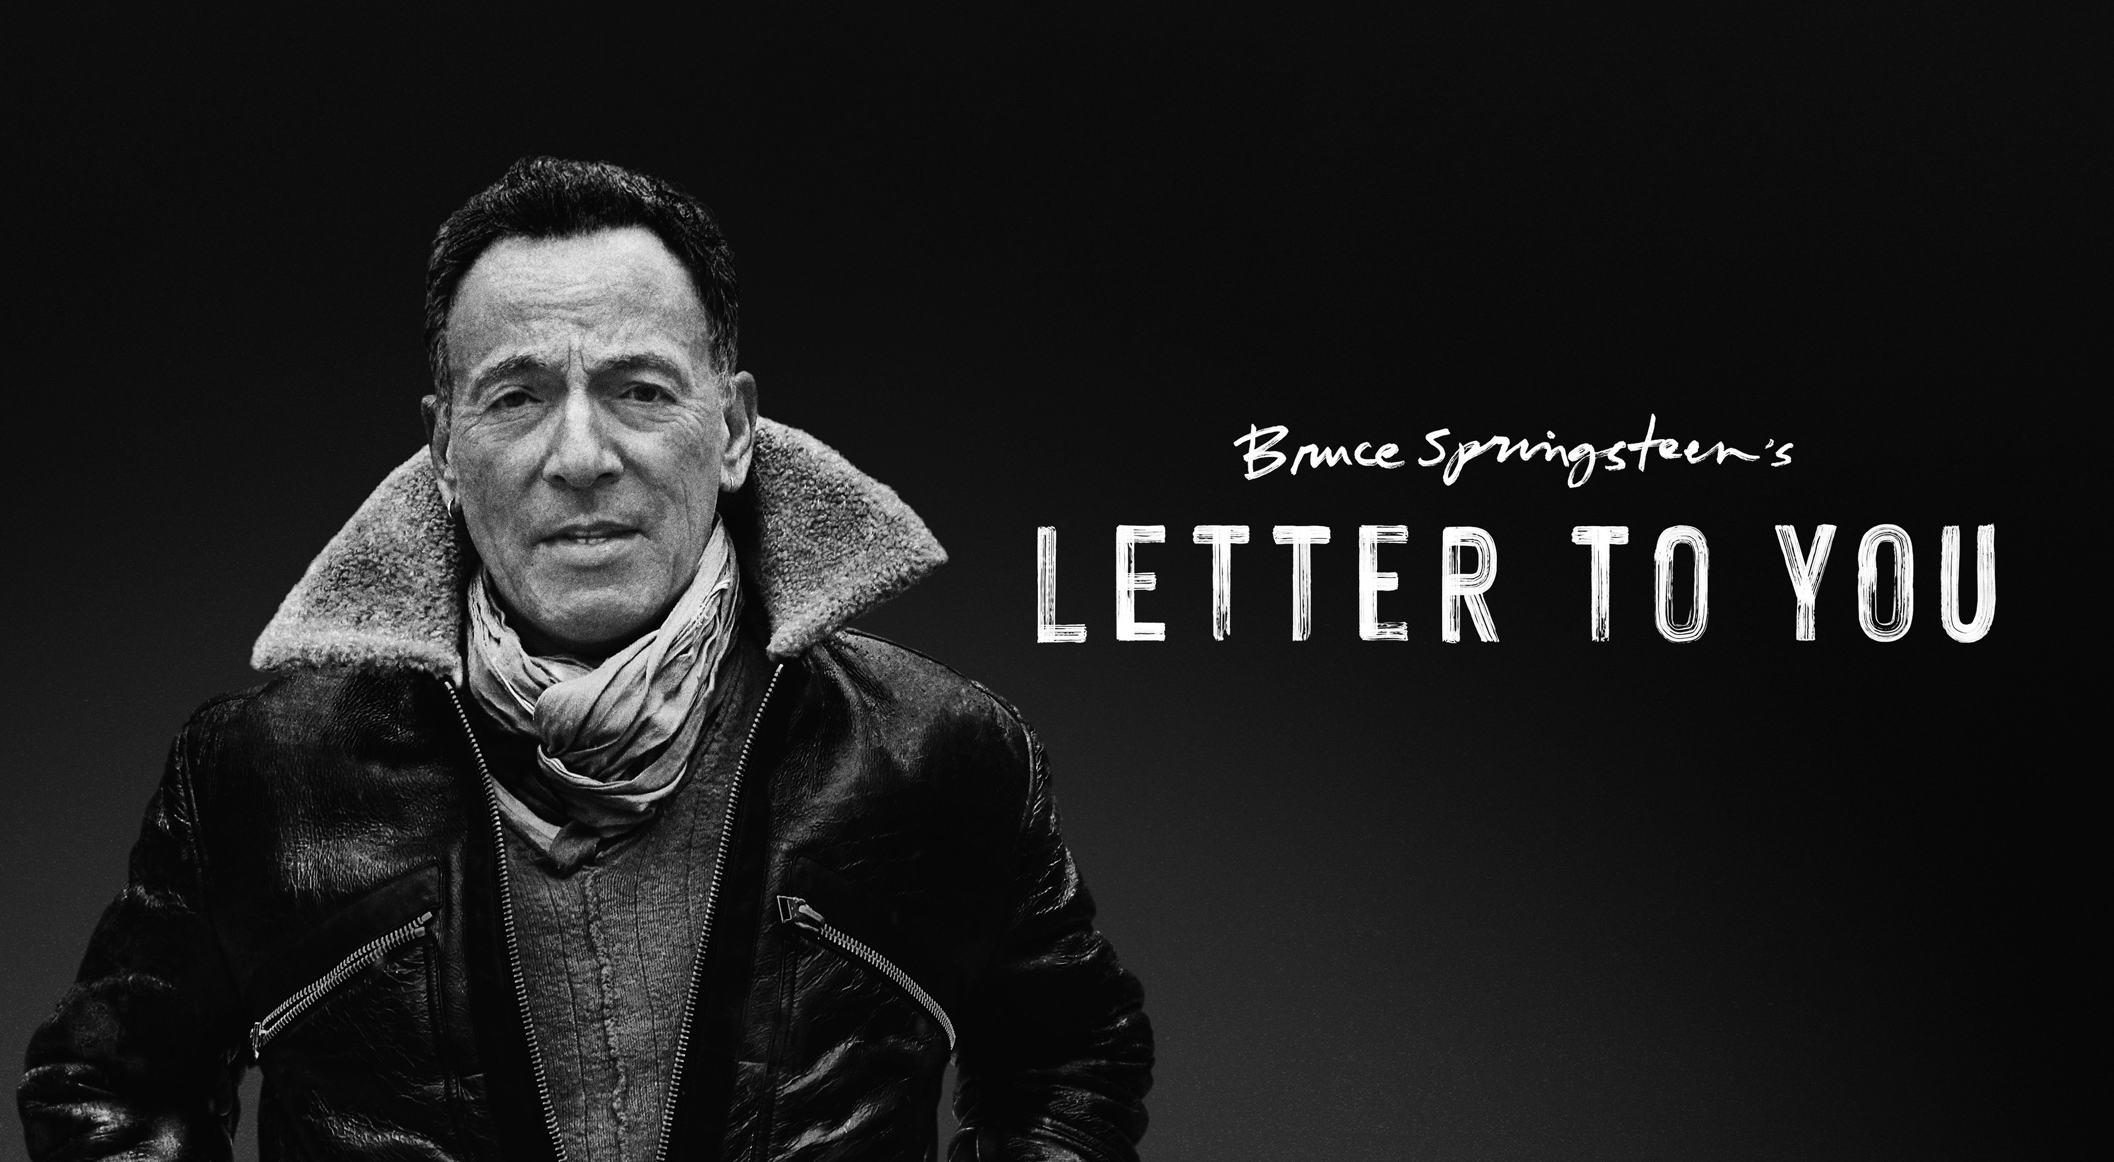 Bruce Springsteens Letter to You (2020)